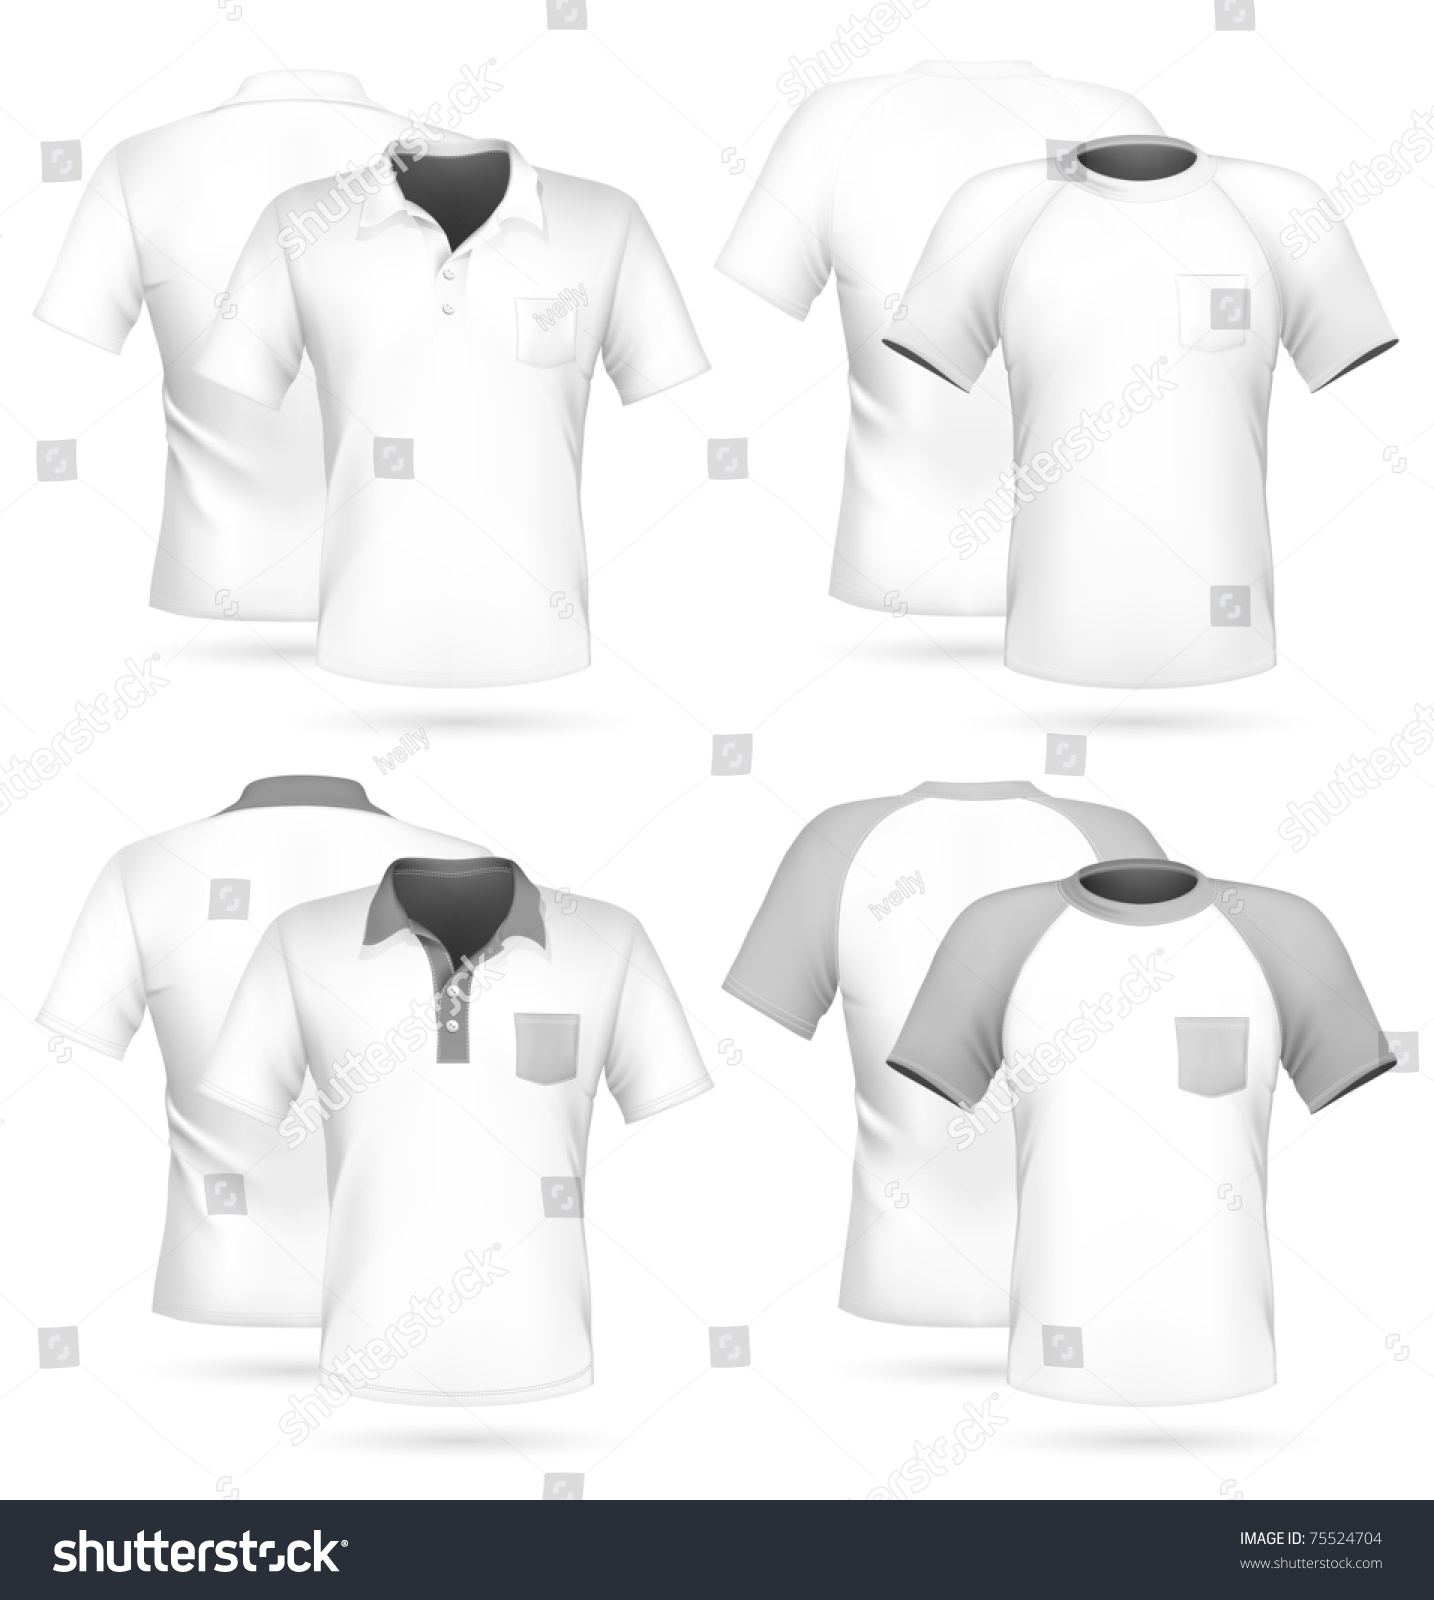 Vector men 39 s polo shirt and t shirt design template with for Shutterstock t shirt design